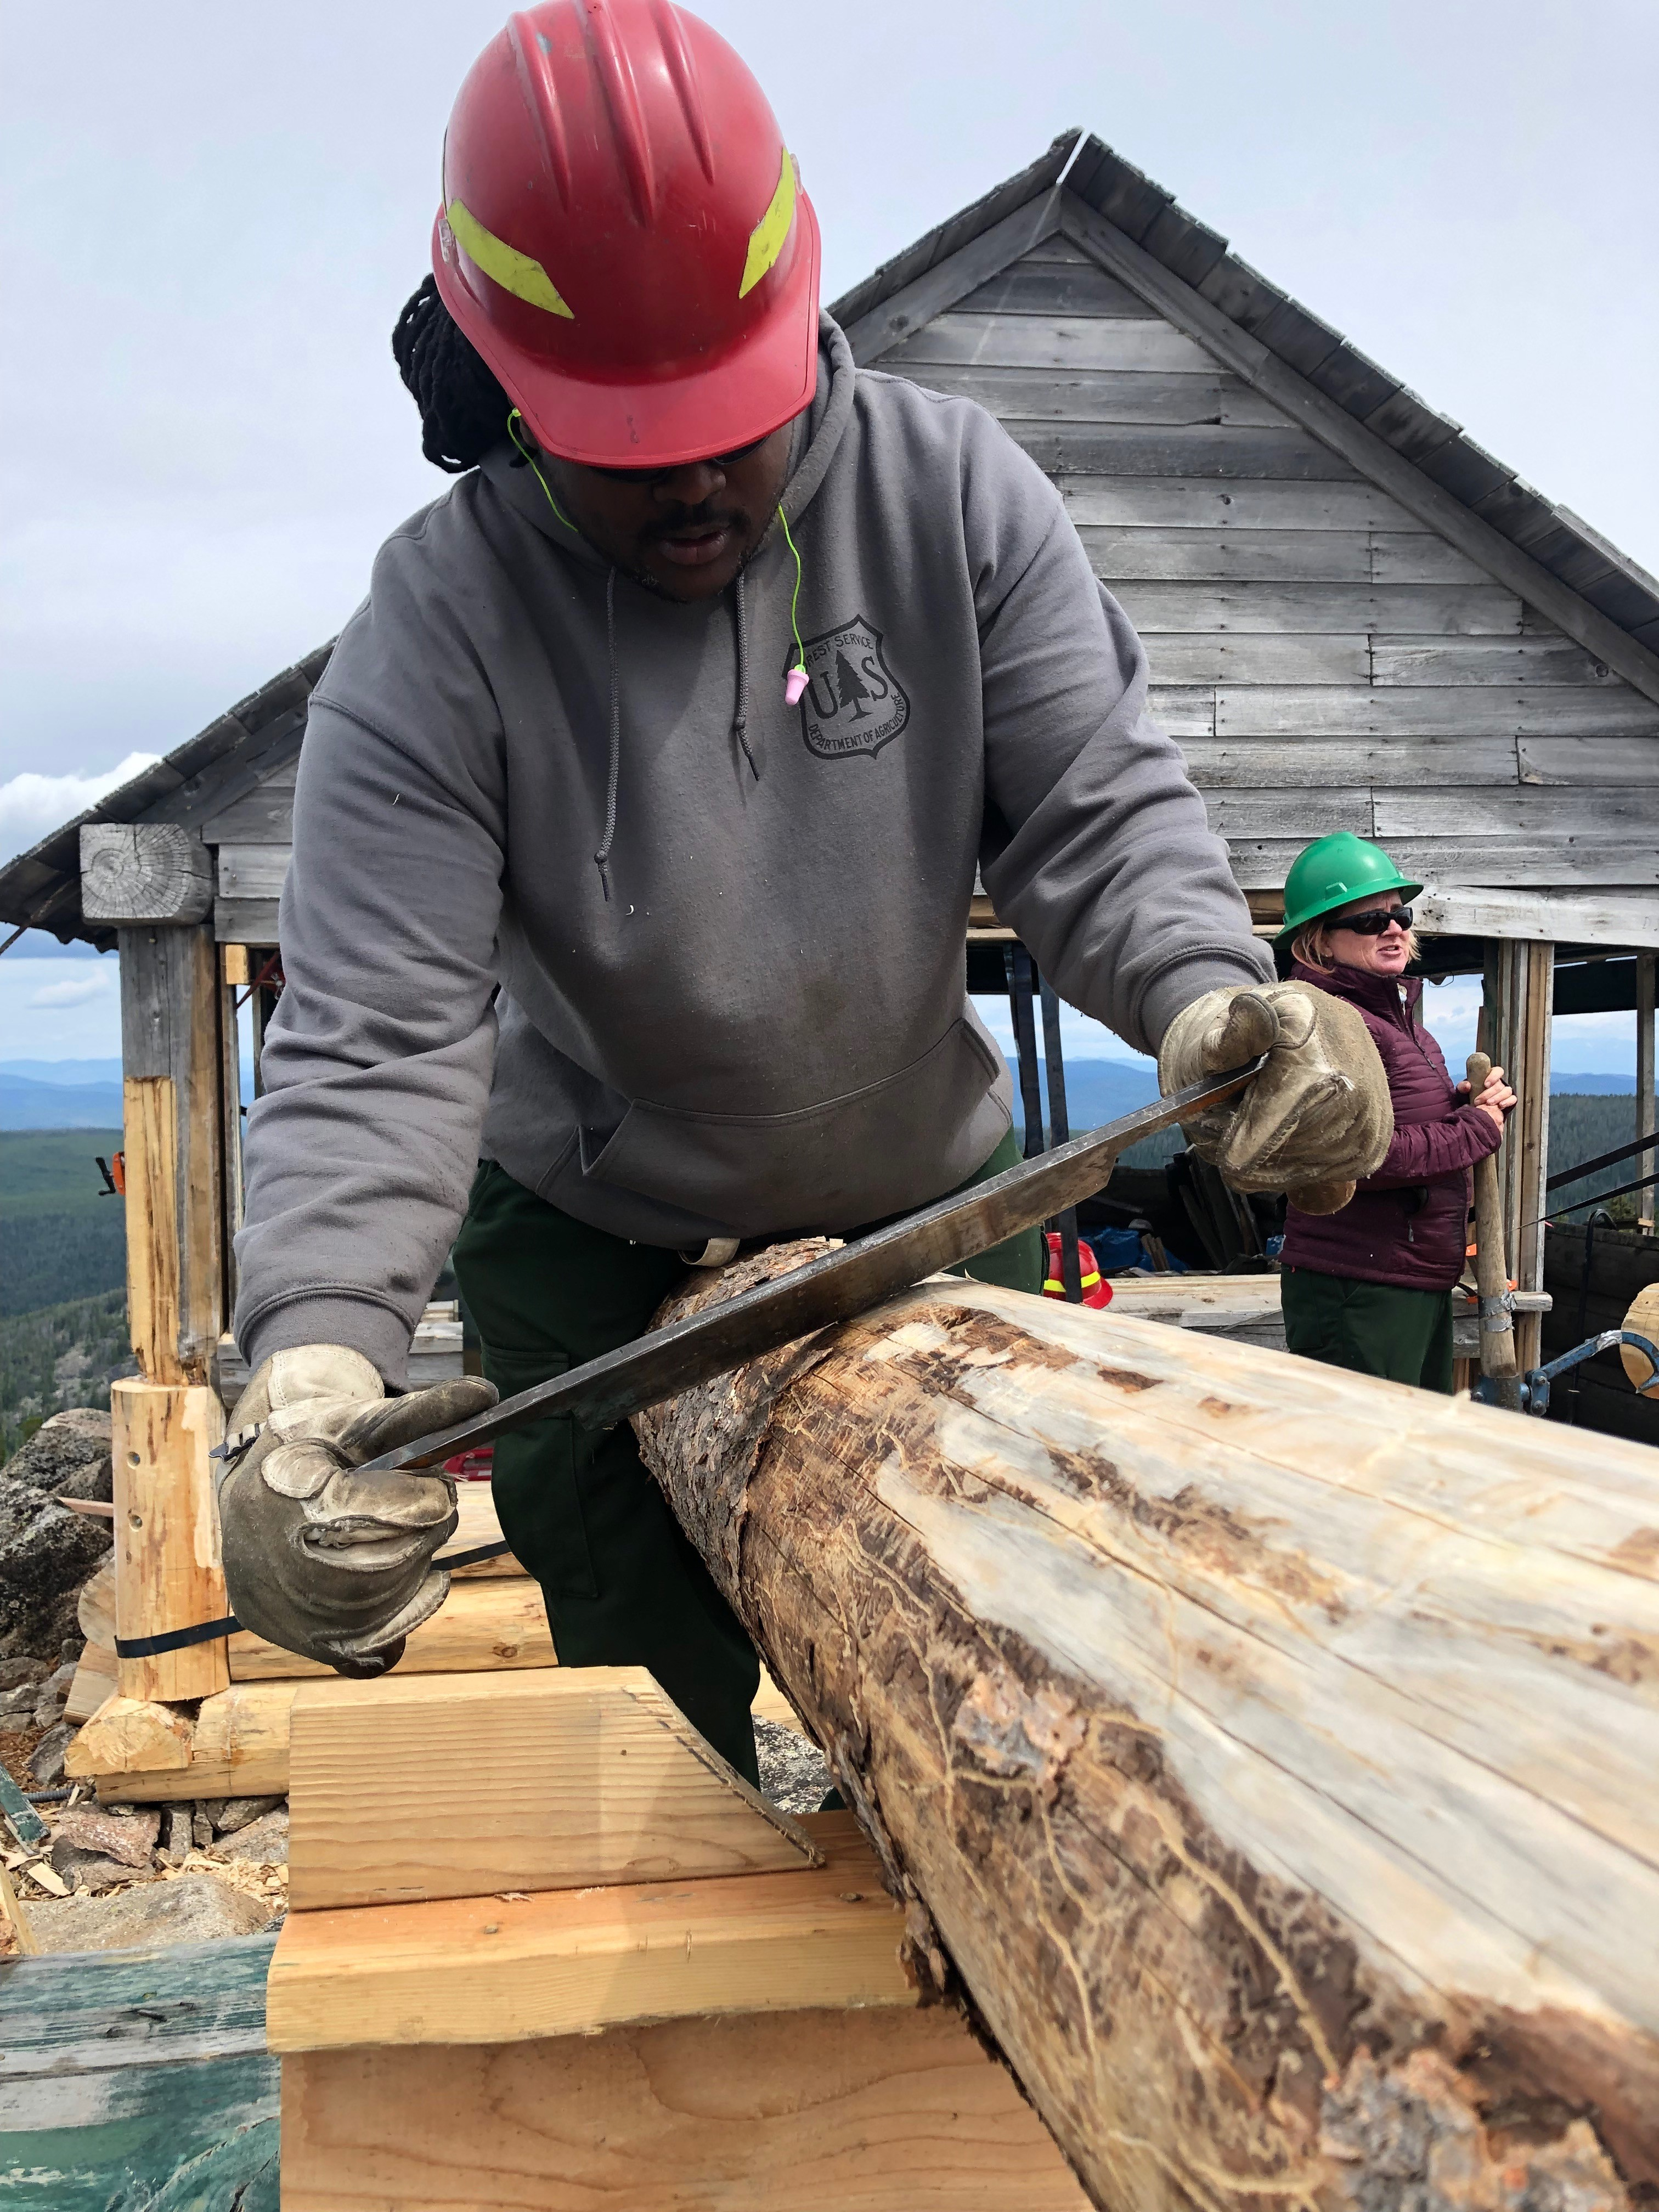 Forest Service employee at work rennovating an historic lookout